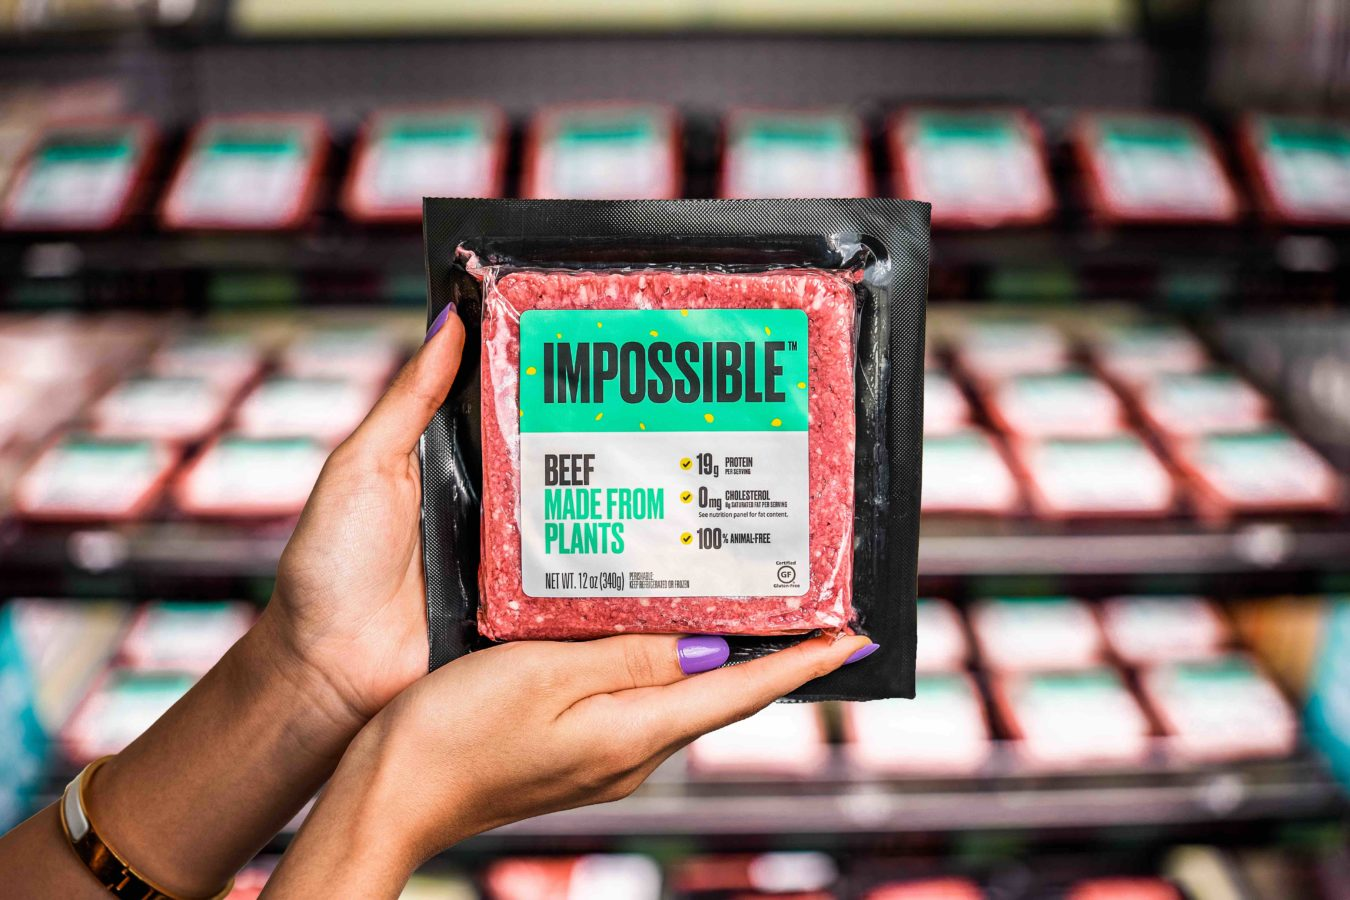 Impossible Foods is now available at a grocery store near you